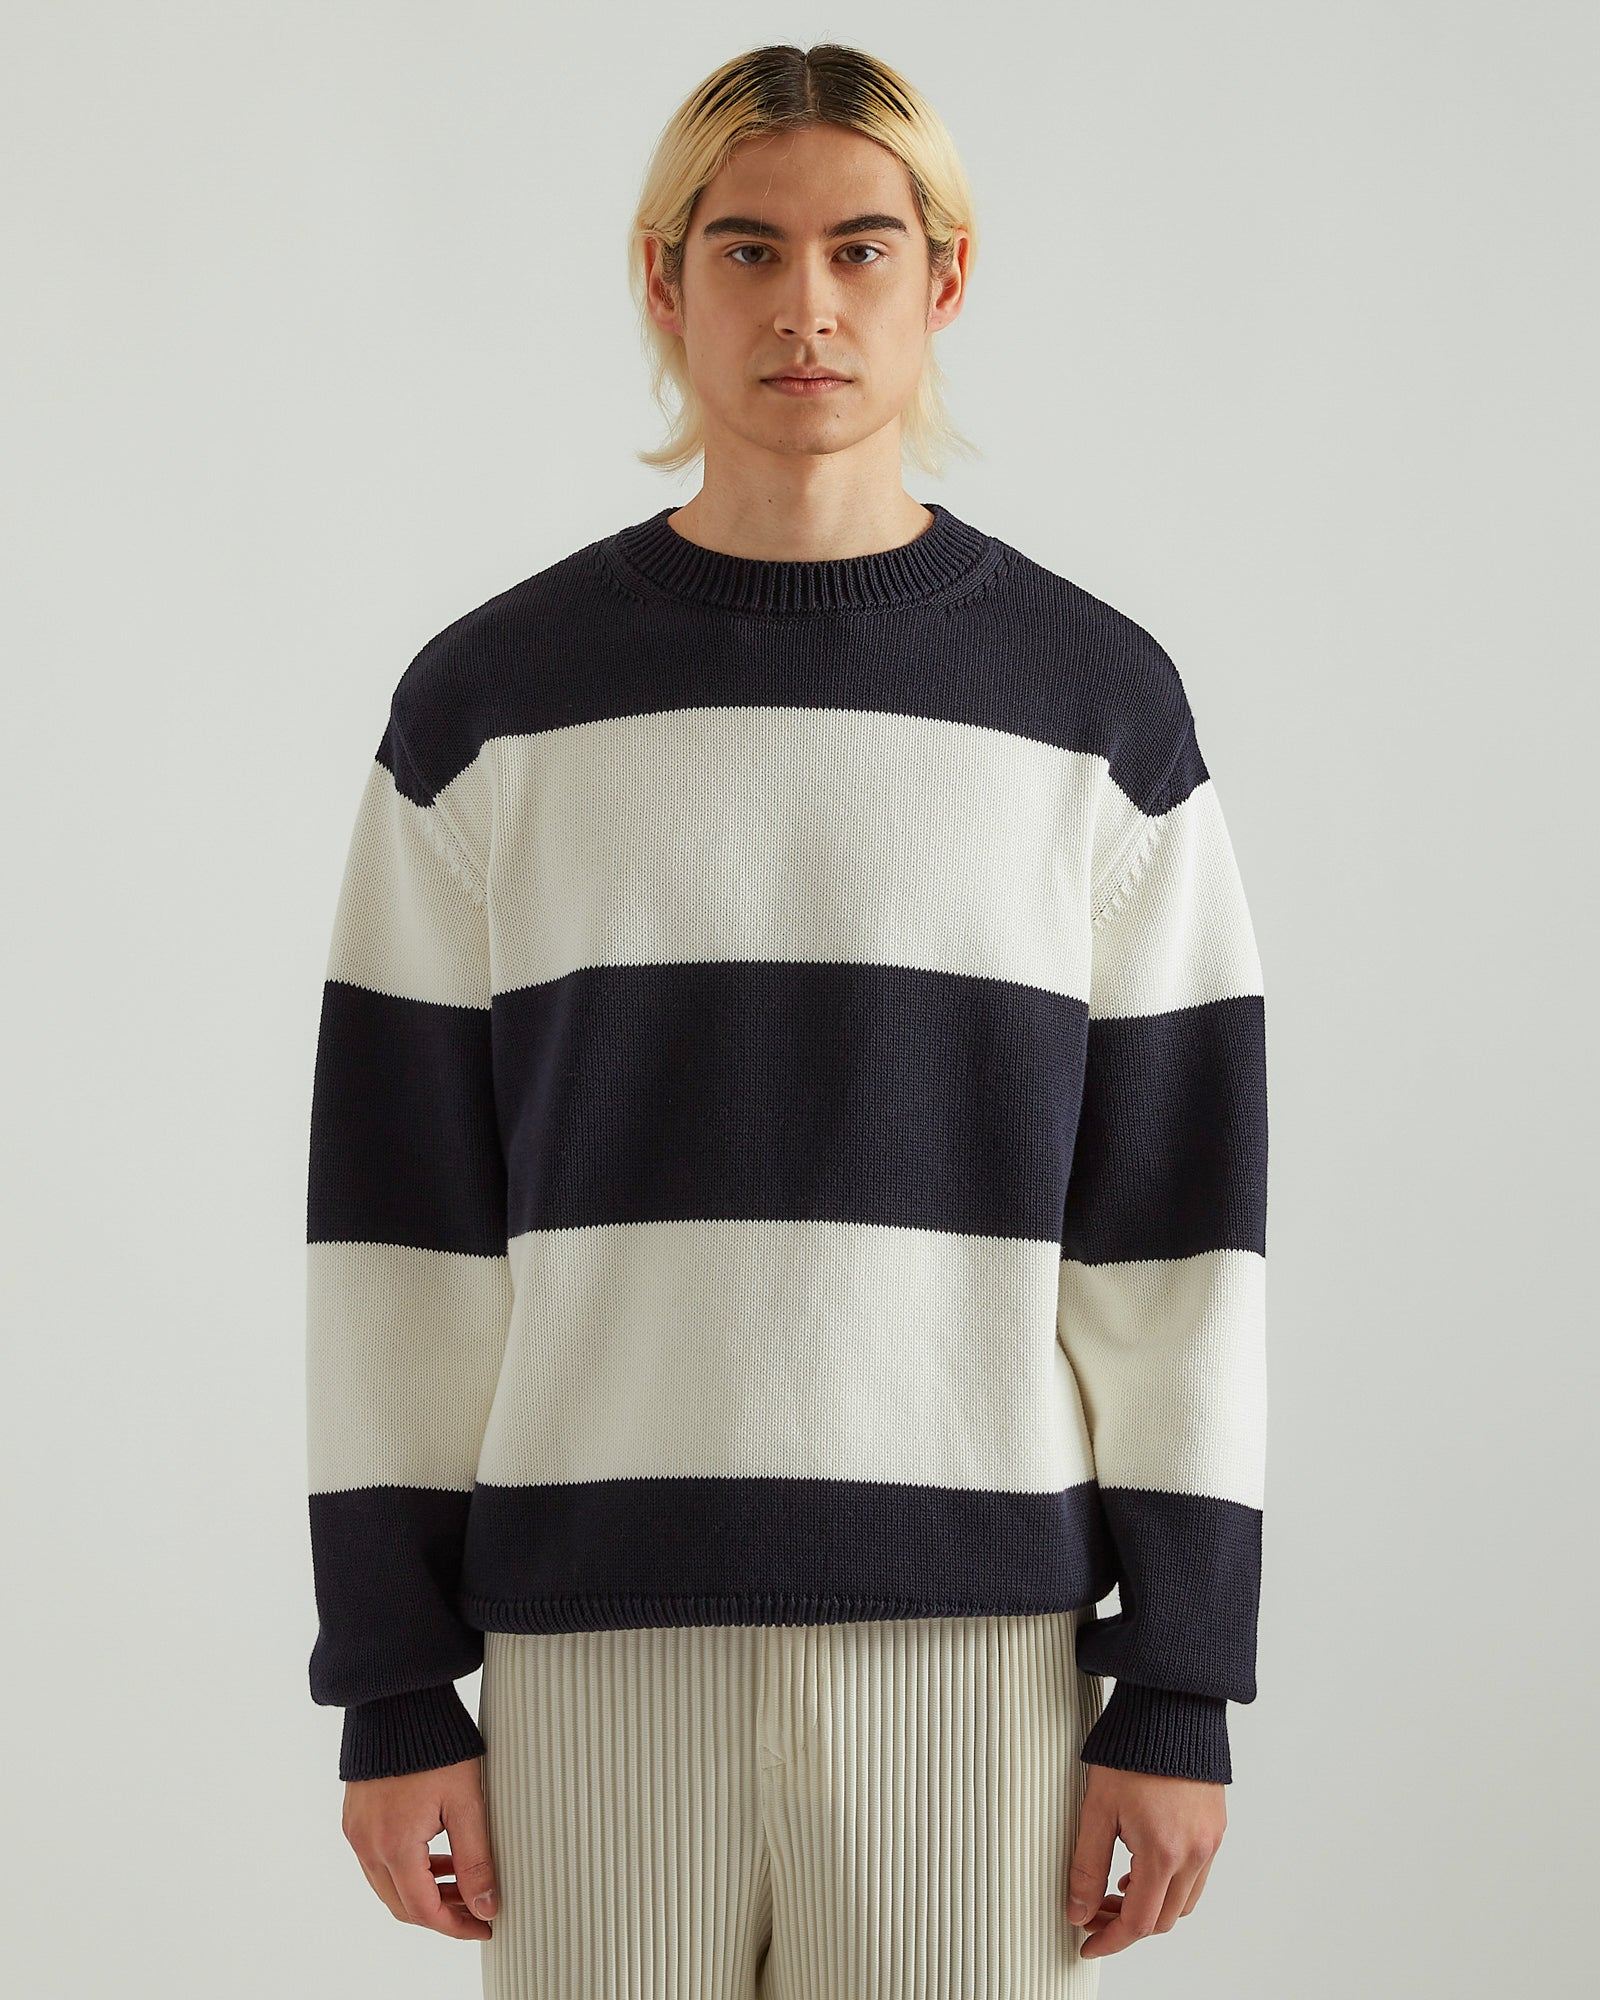 Nameday Sweater in Navy/Off White